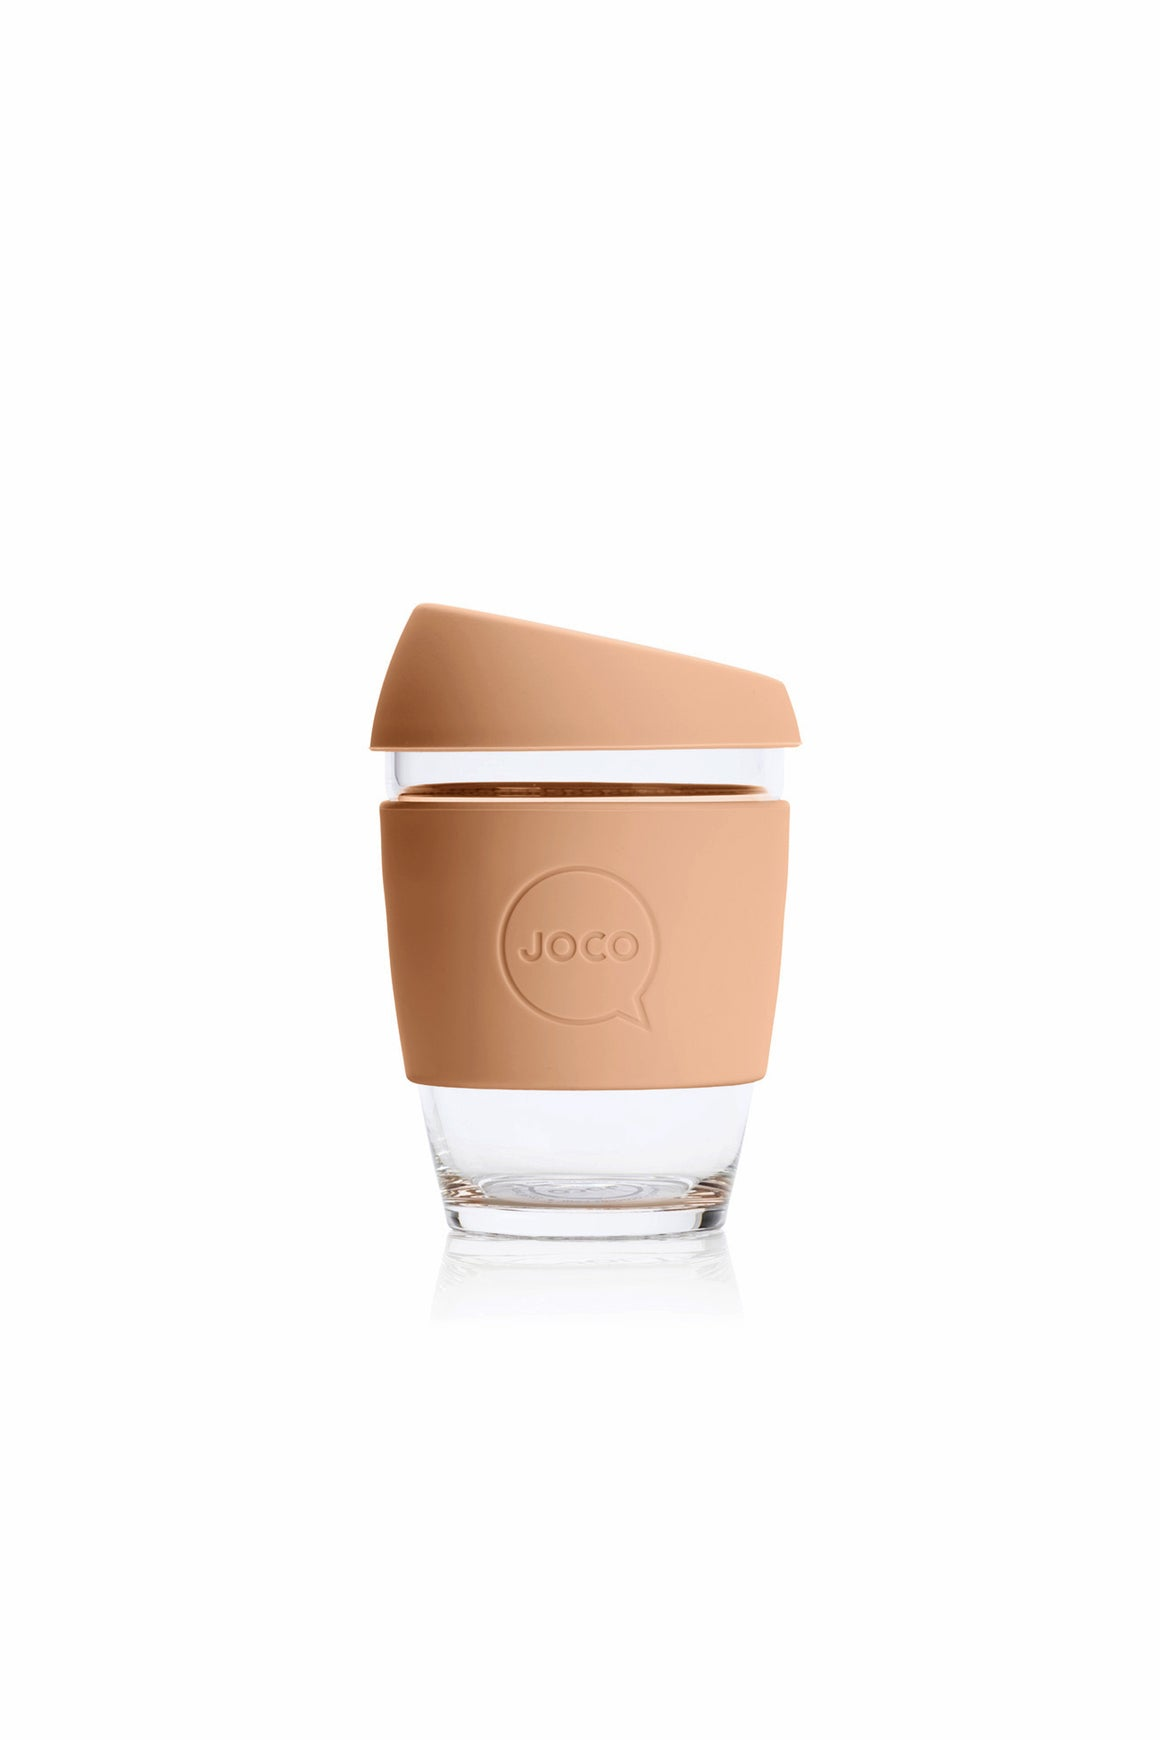 Joco Reusable Glass Coffee Cup in Amberlight